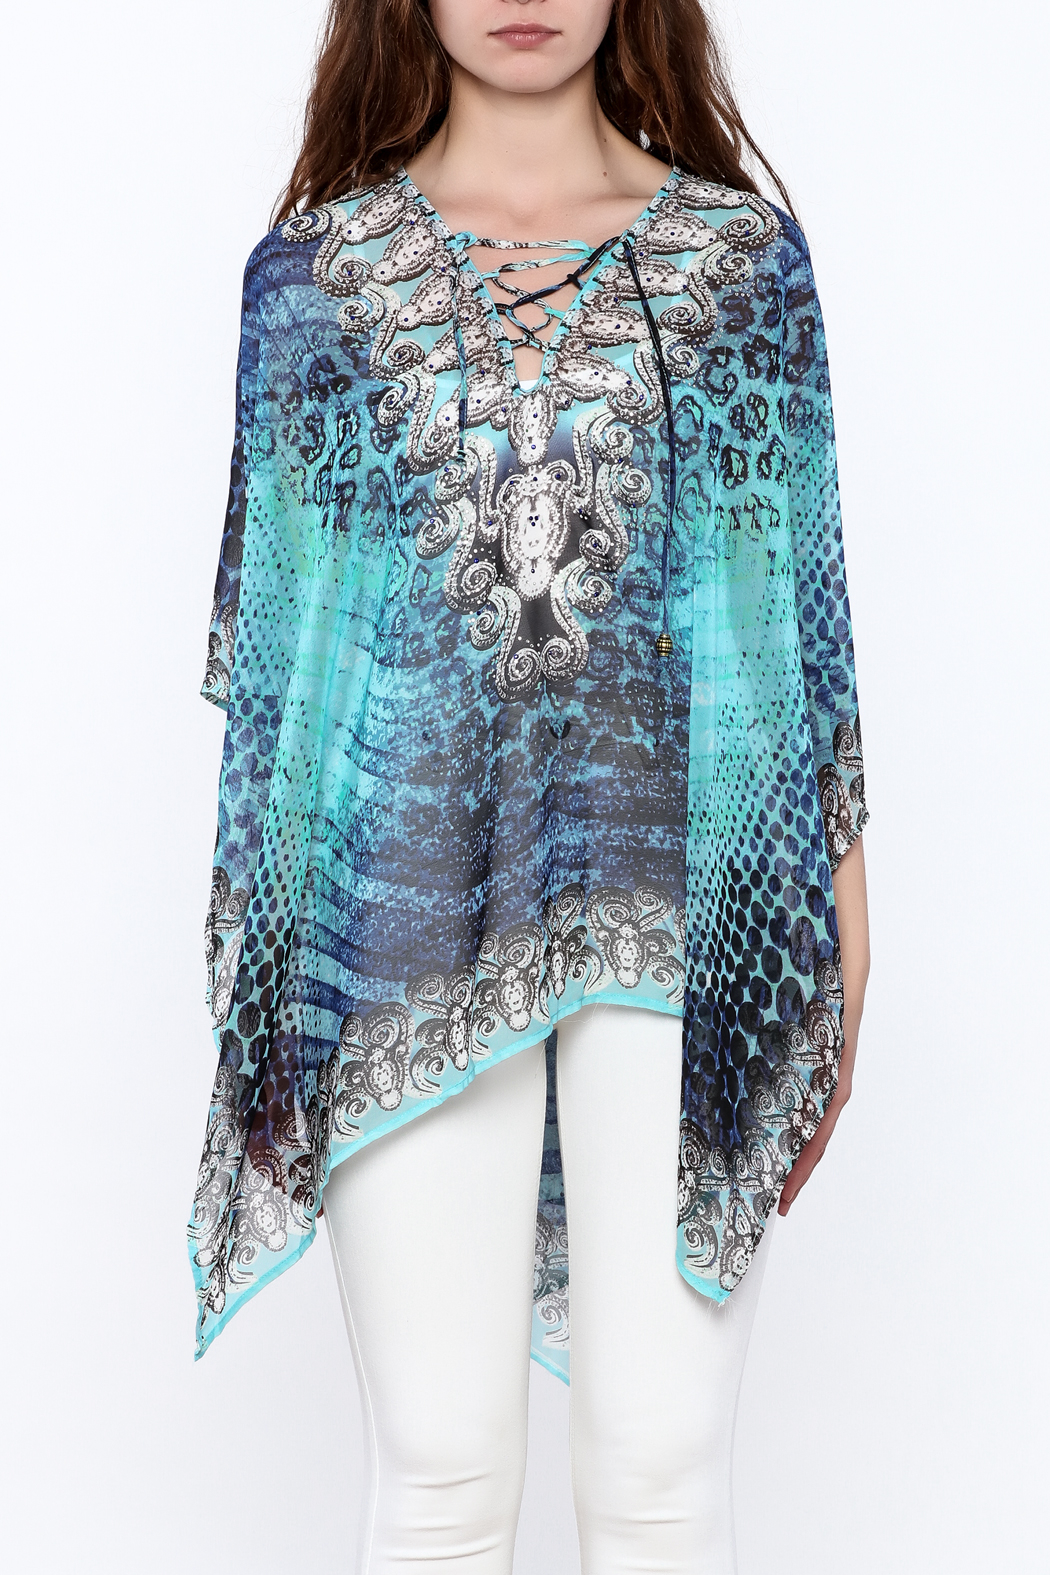 Pure Hype Blue Printed Kaftan Top - Side Cropped Image